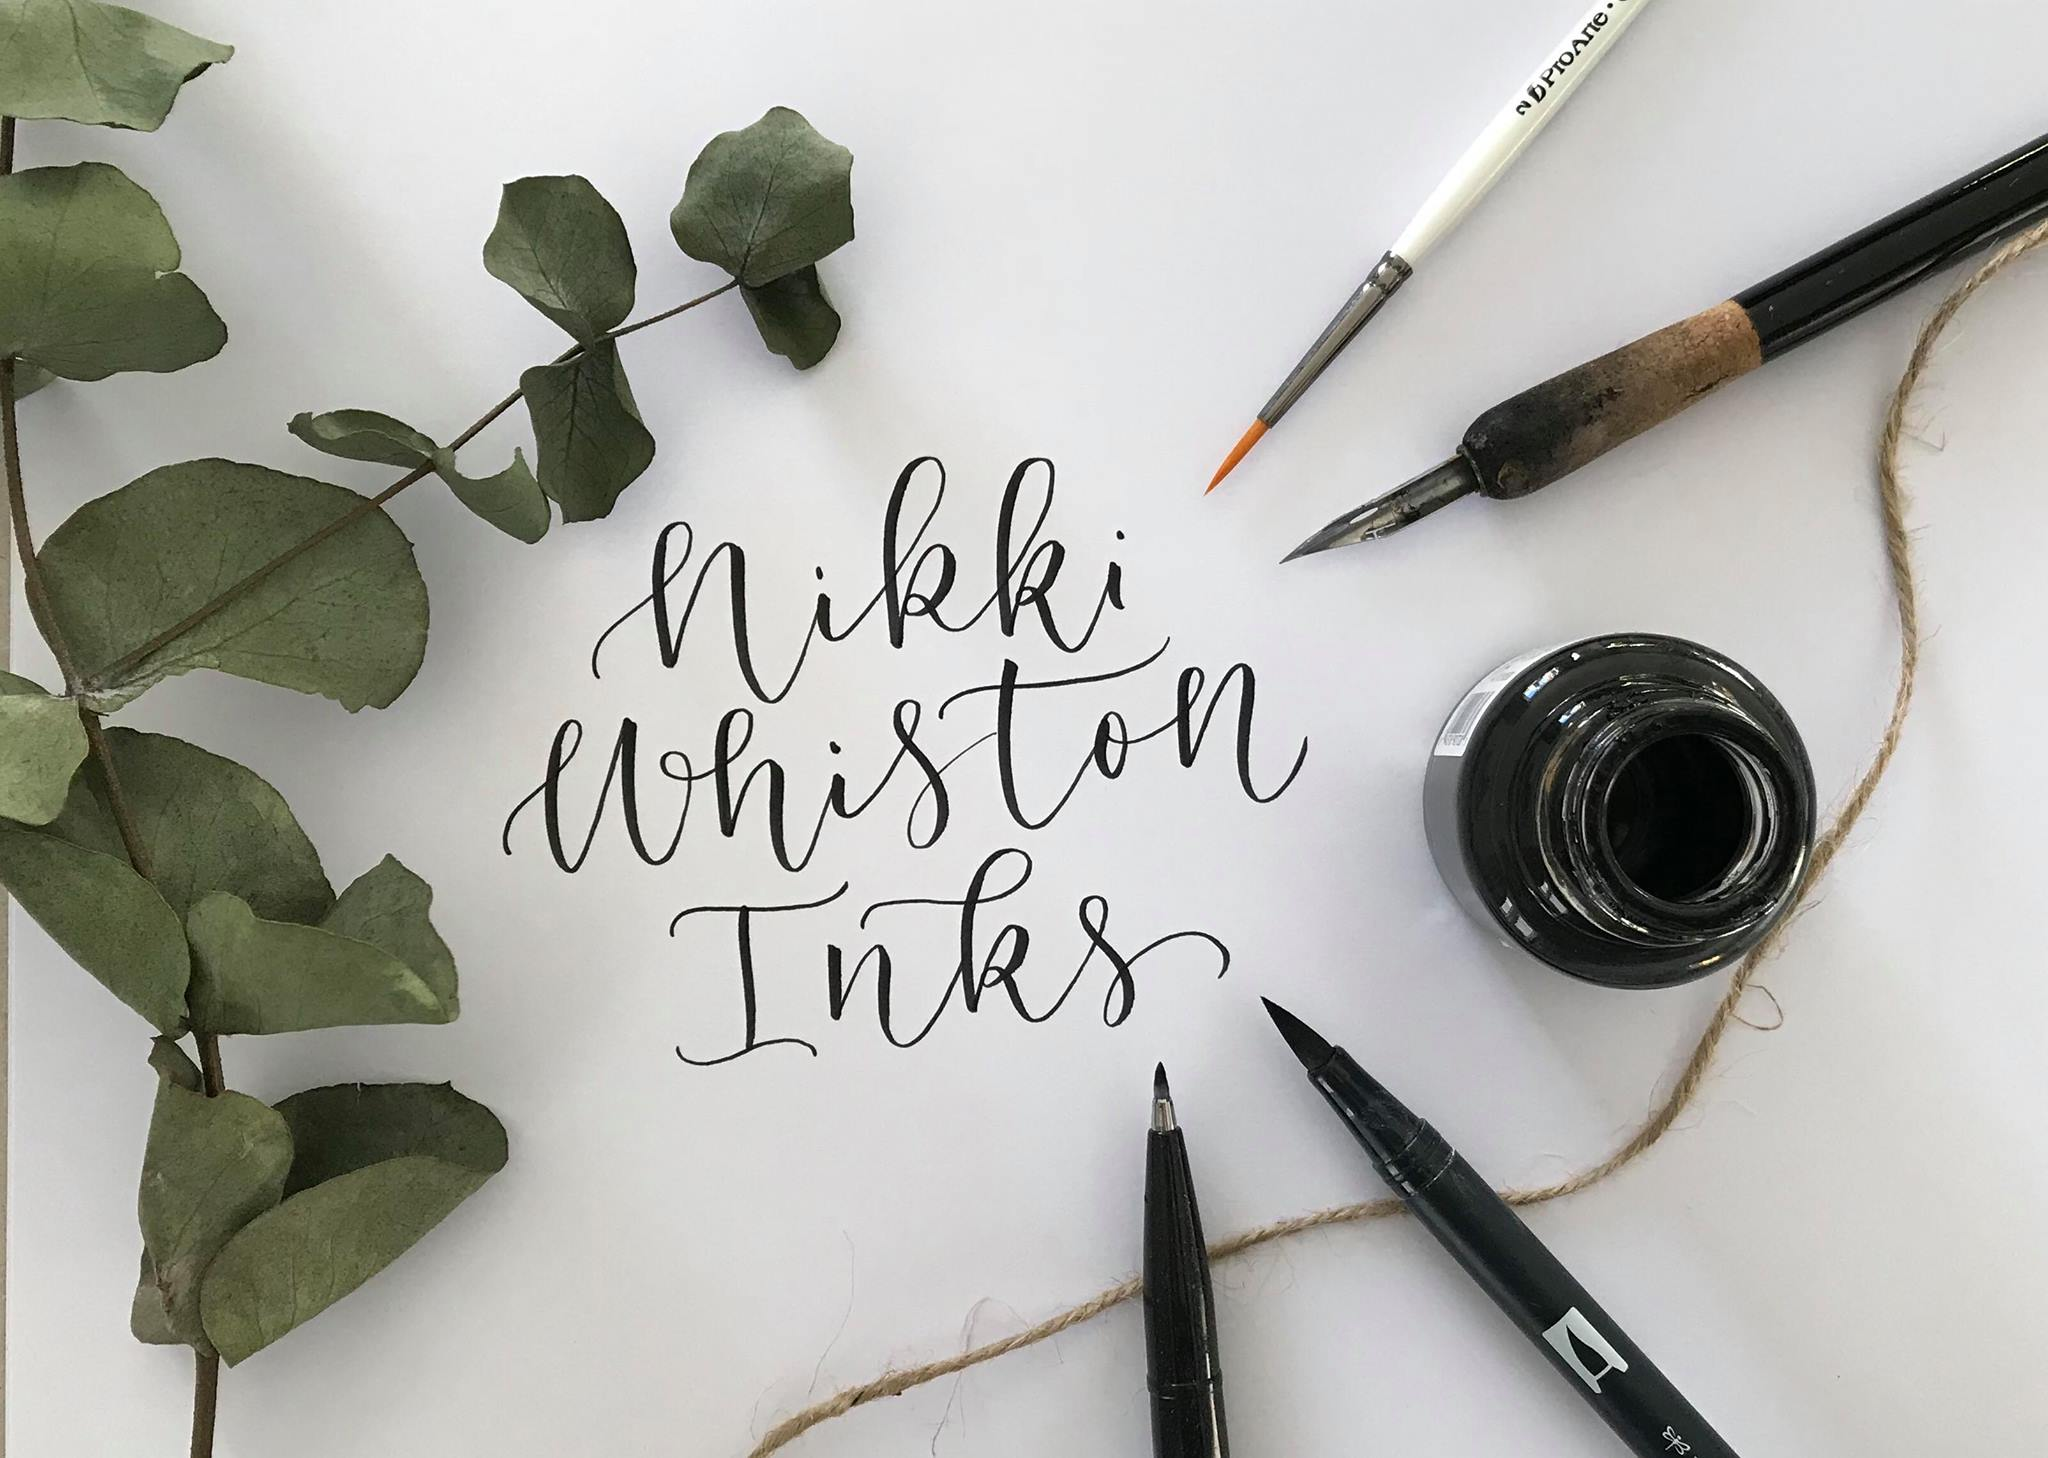 September 3rd: Calligraphy Workshop with Nikki Whiston Inks